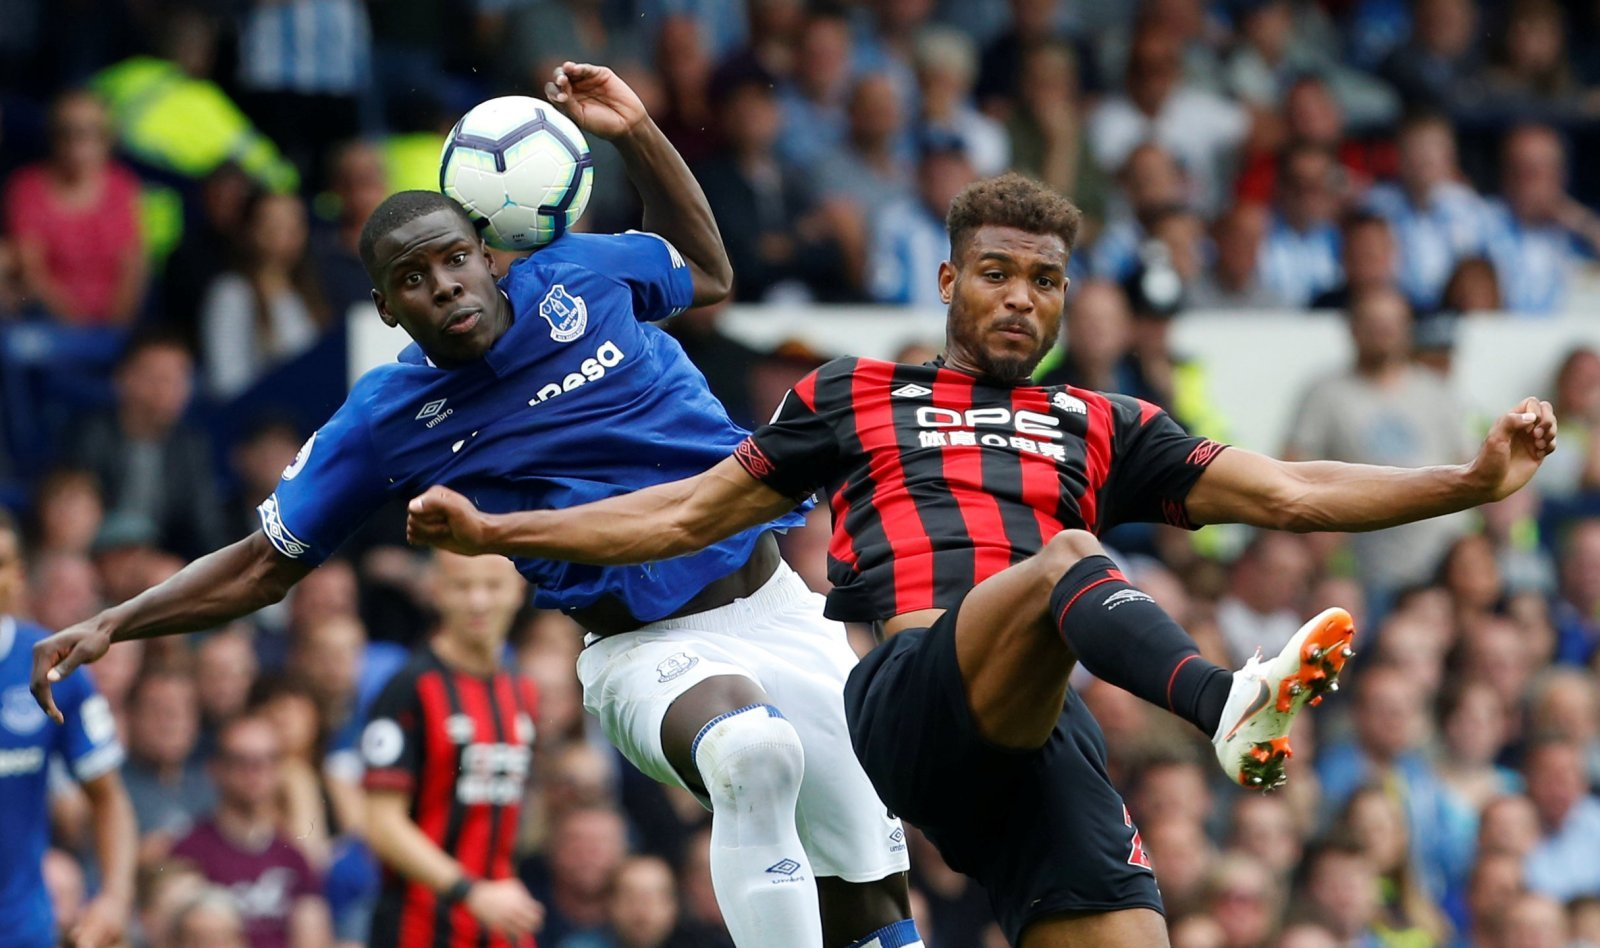 Chelsea's transfer ban not enough to prevent Everton from signing Zouma